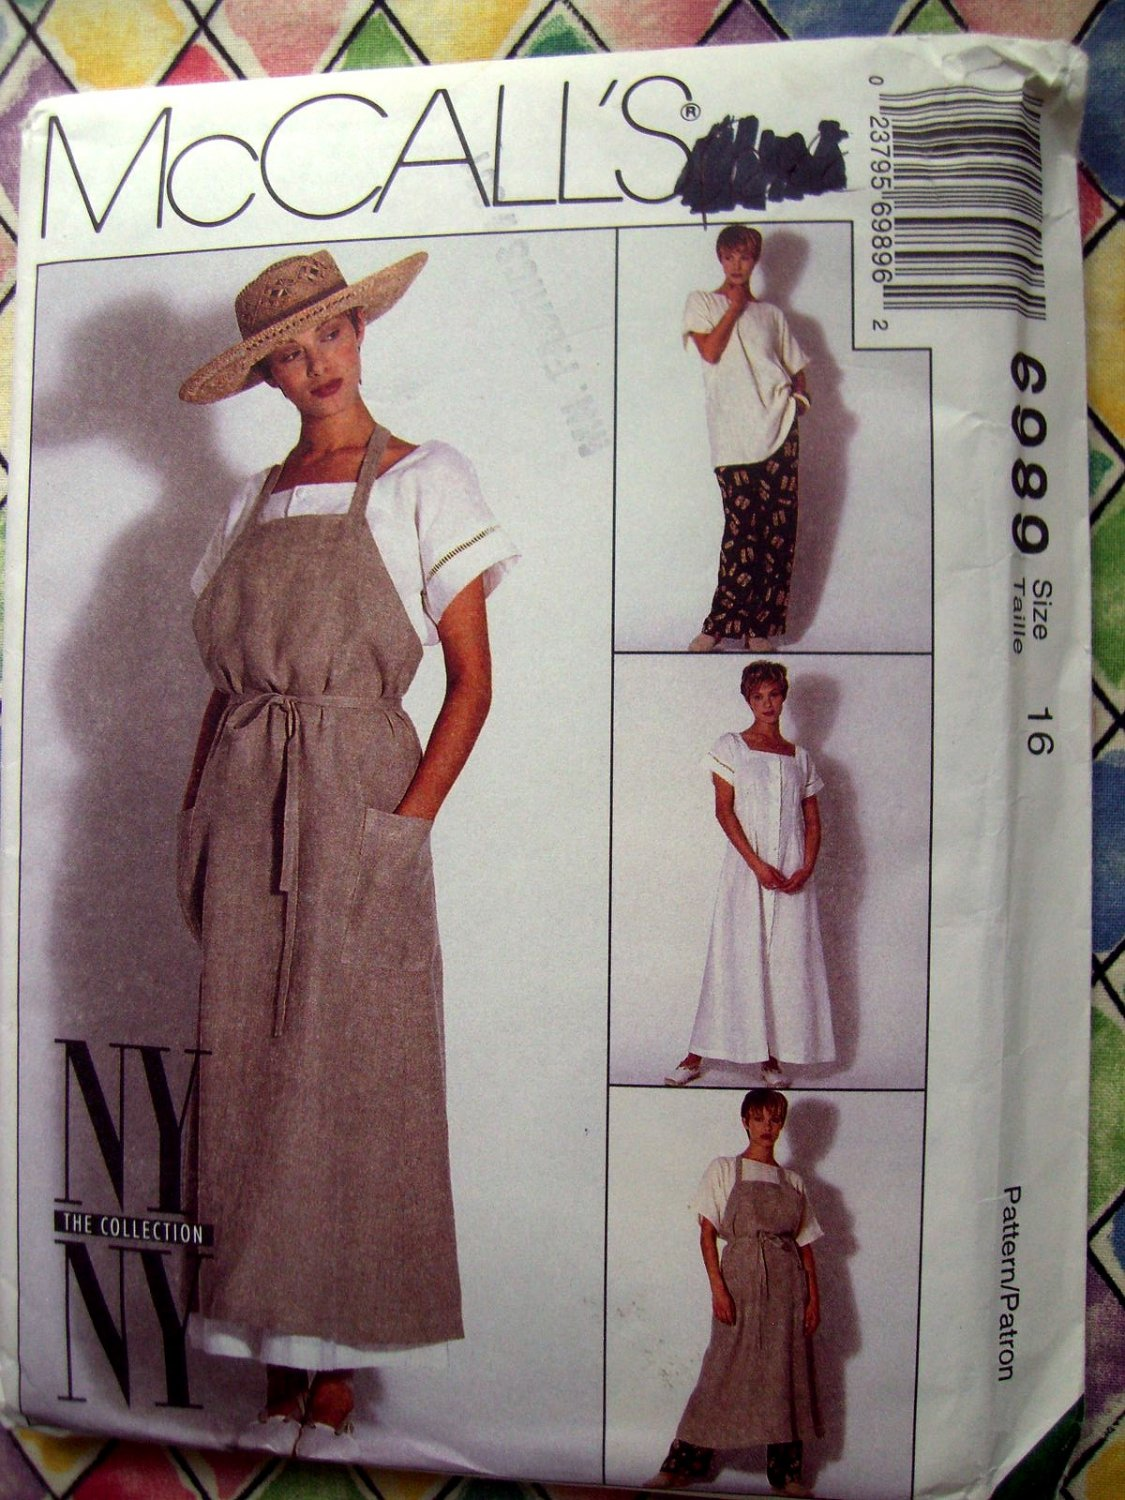 SOLD! McCalls Pattern # 6989 UNCUT Misses Dress Apron Top Pants NY Collection RARE! Size 16